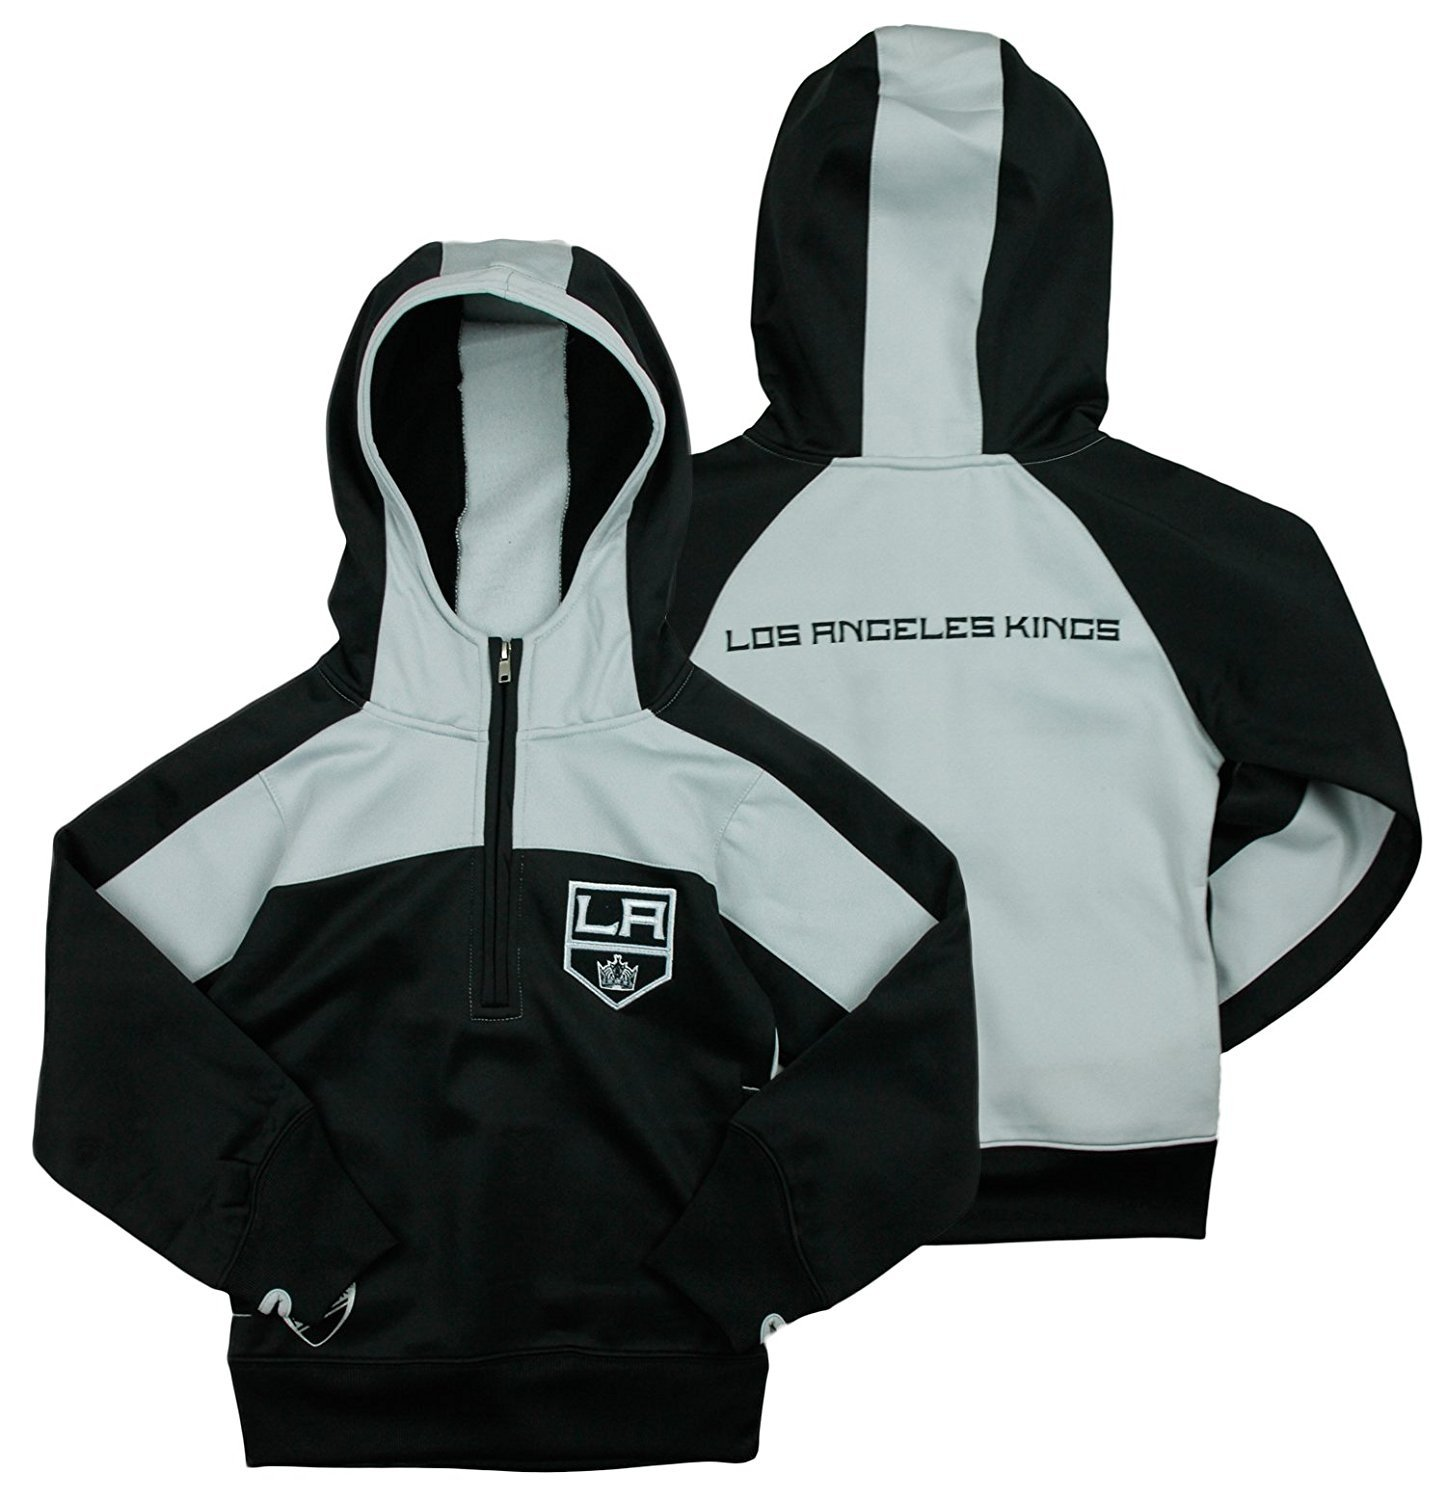 L XL OR 2XL NEW! LOS ANGELES KINGS NHL MEN/'S PULLOVER WARM UP JACKET S